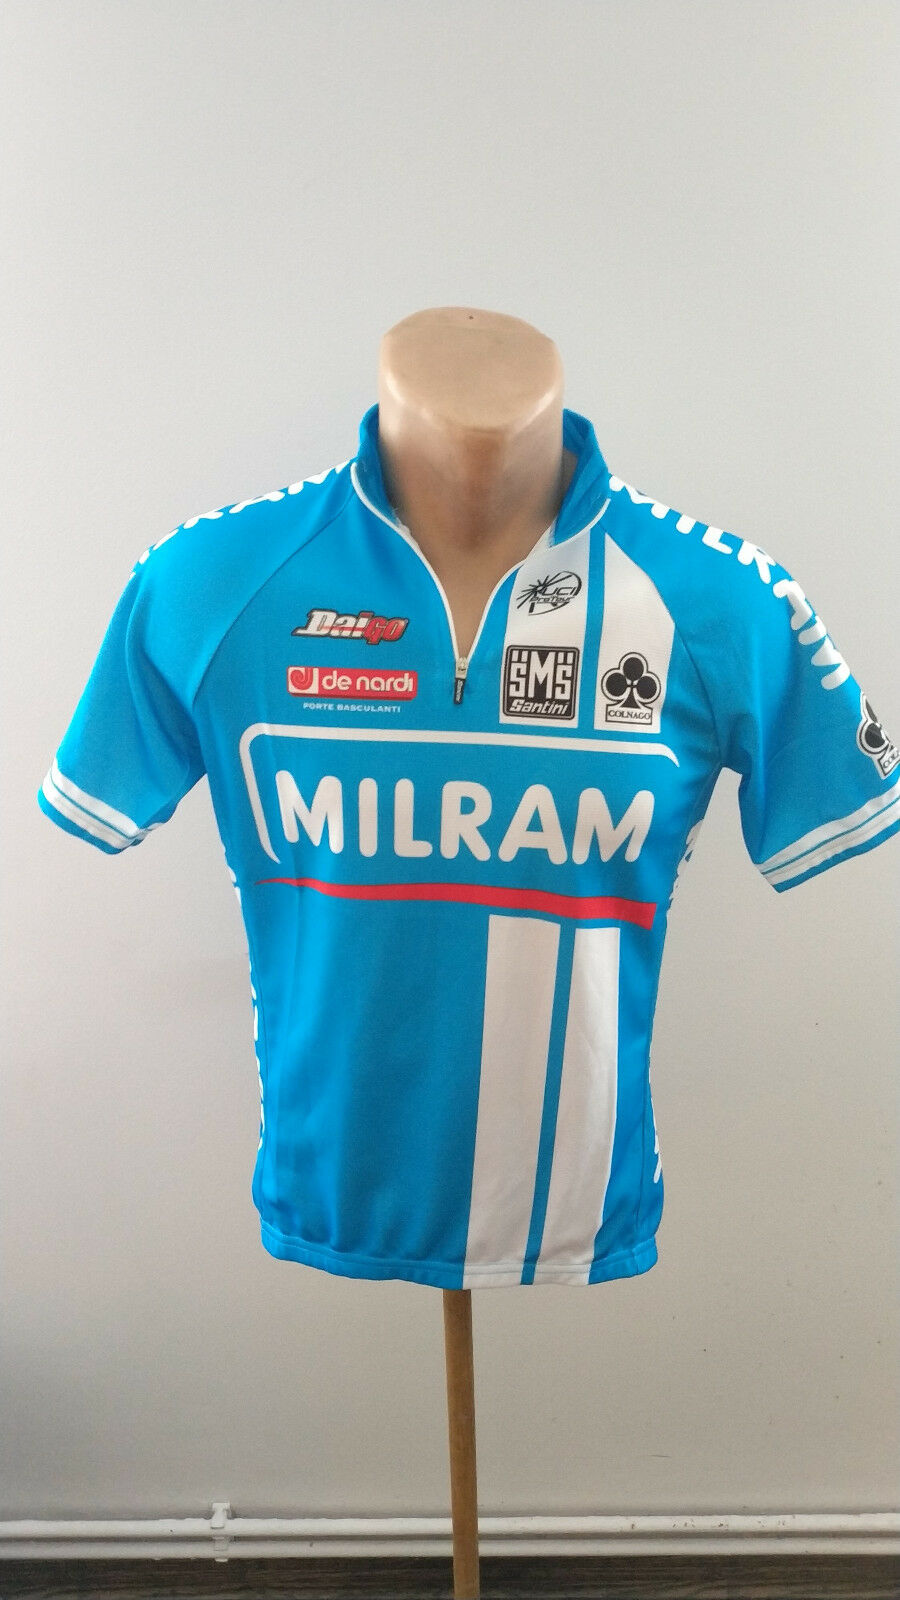 NEW with tags Santini  SMS Cycling Bike Jersey MILRAM bluee White Adult Small 42